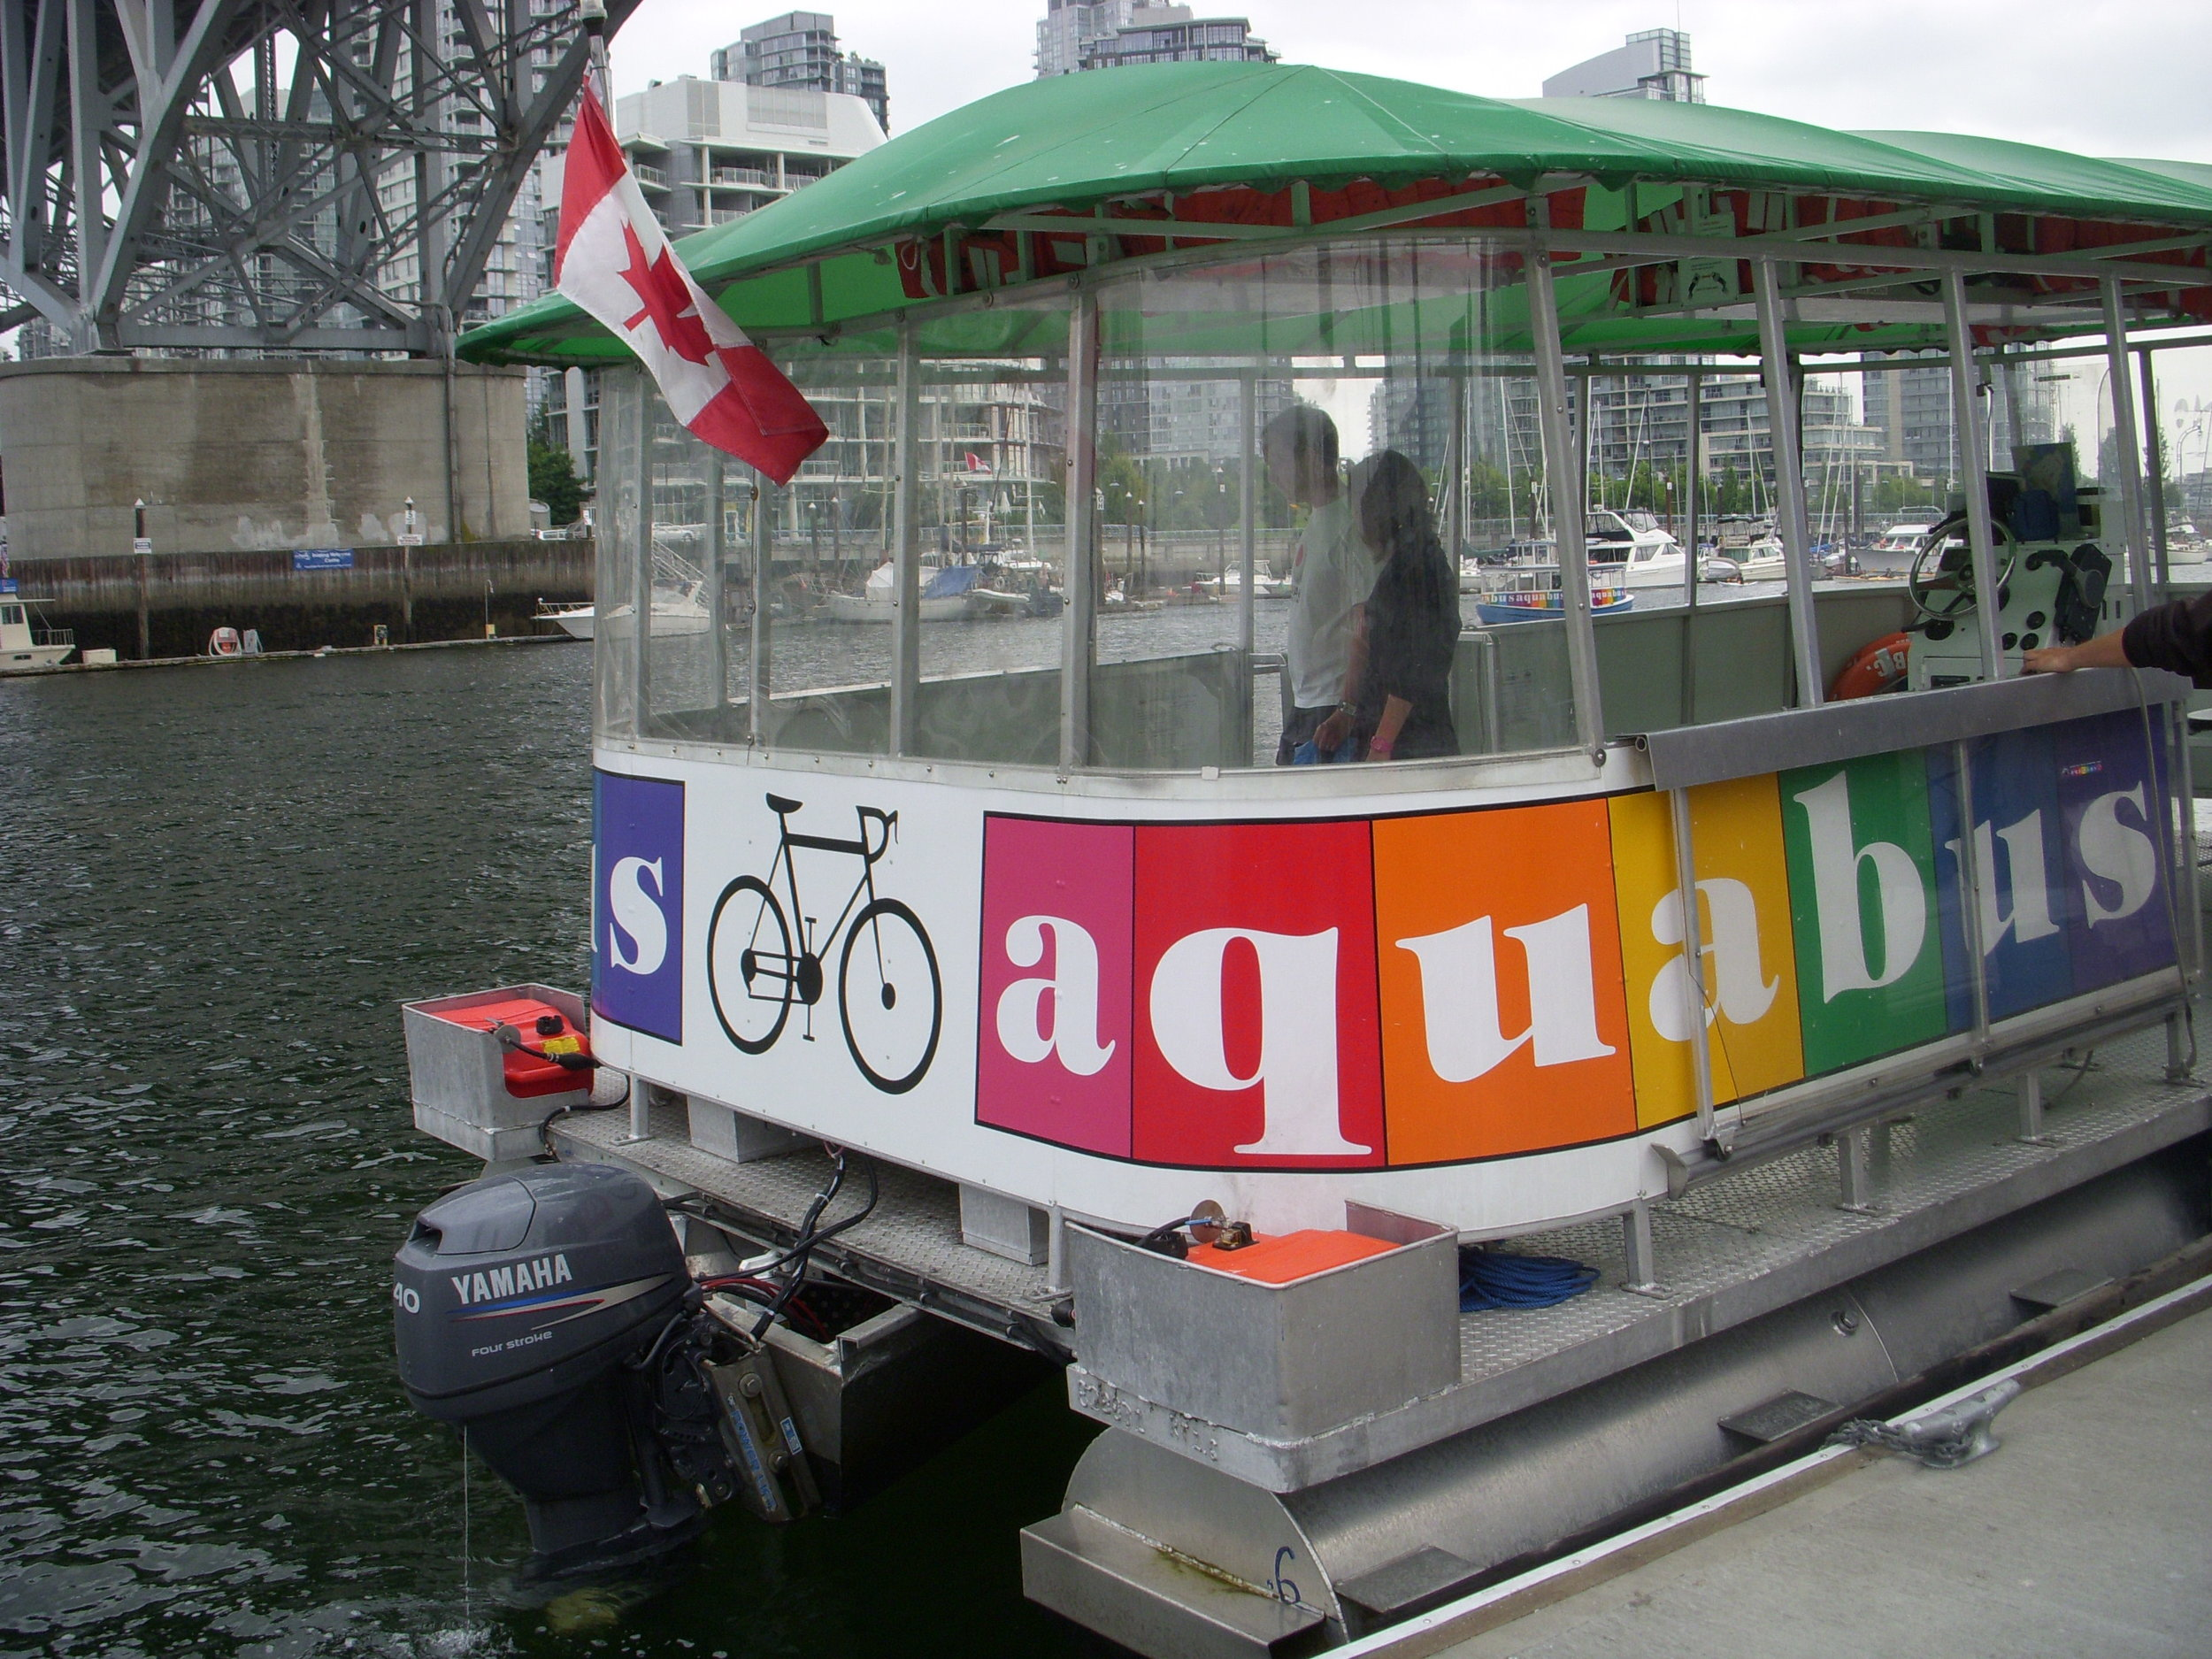 This, then is an Aquabus.